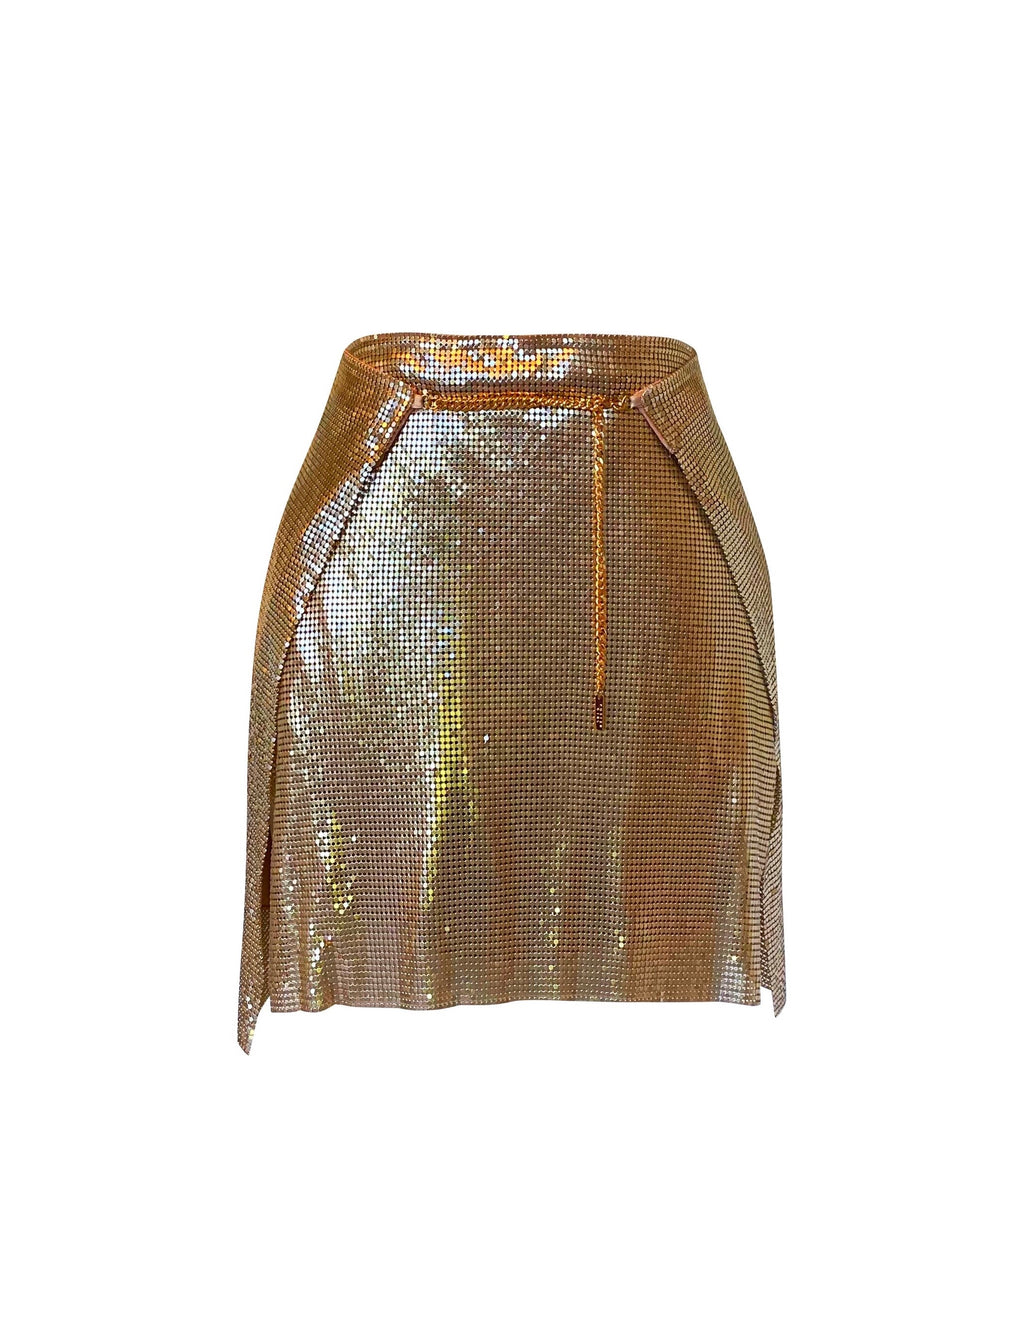 Adrienne Double Wrap Mini Skirt - Gold